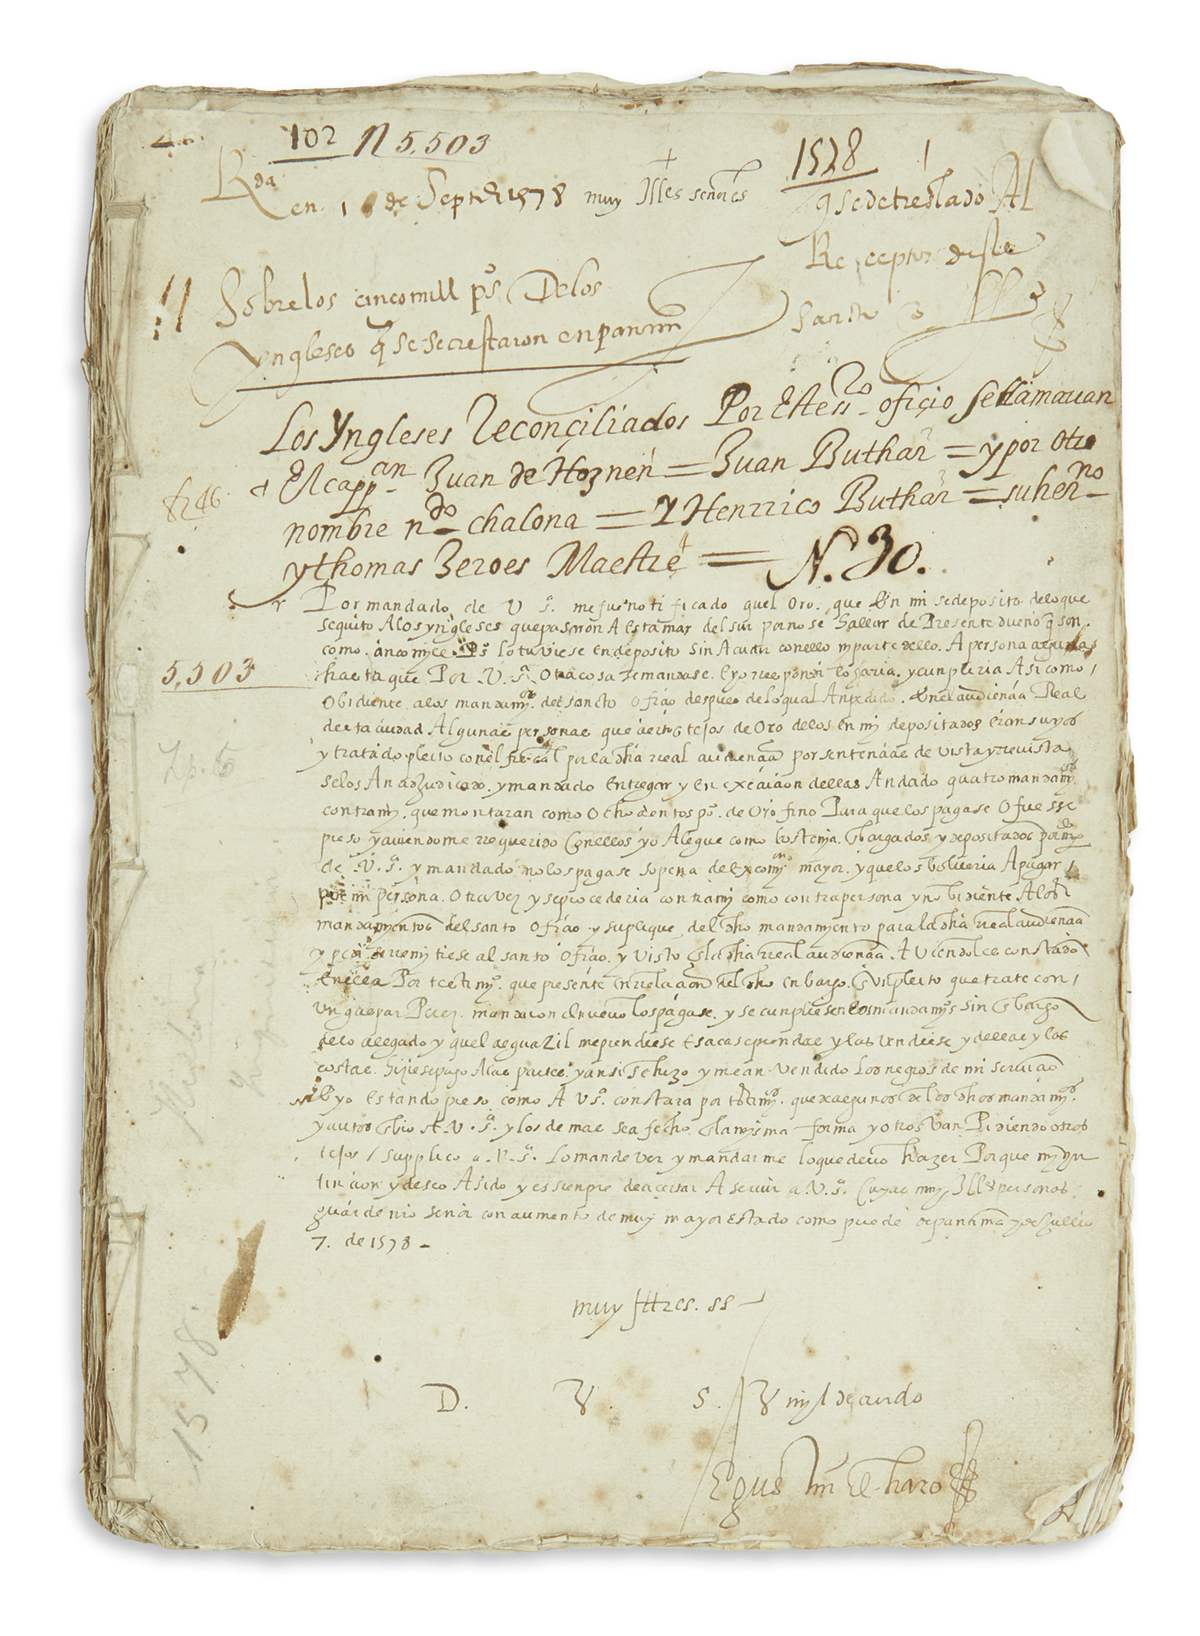 (PIRATES.) Extensive file on efforts to recover the treasure looted by English privateer John Oxenham in Panama.